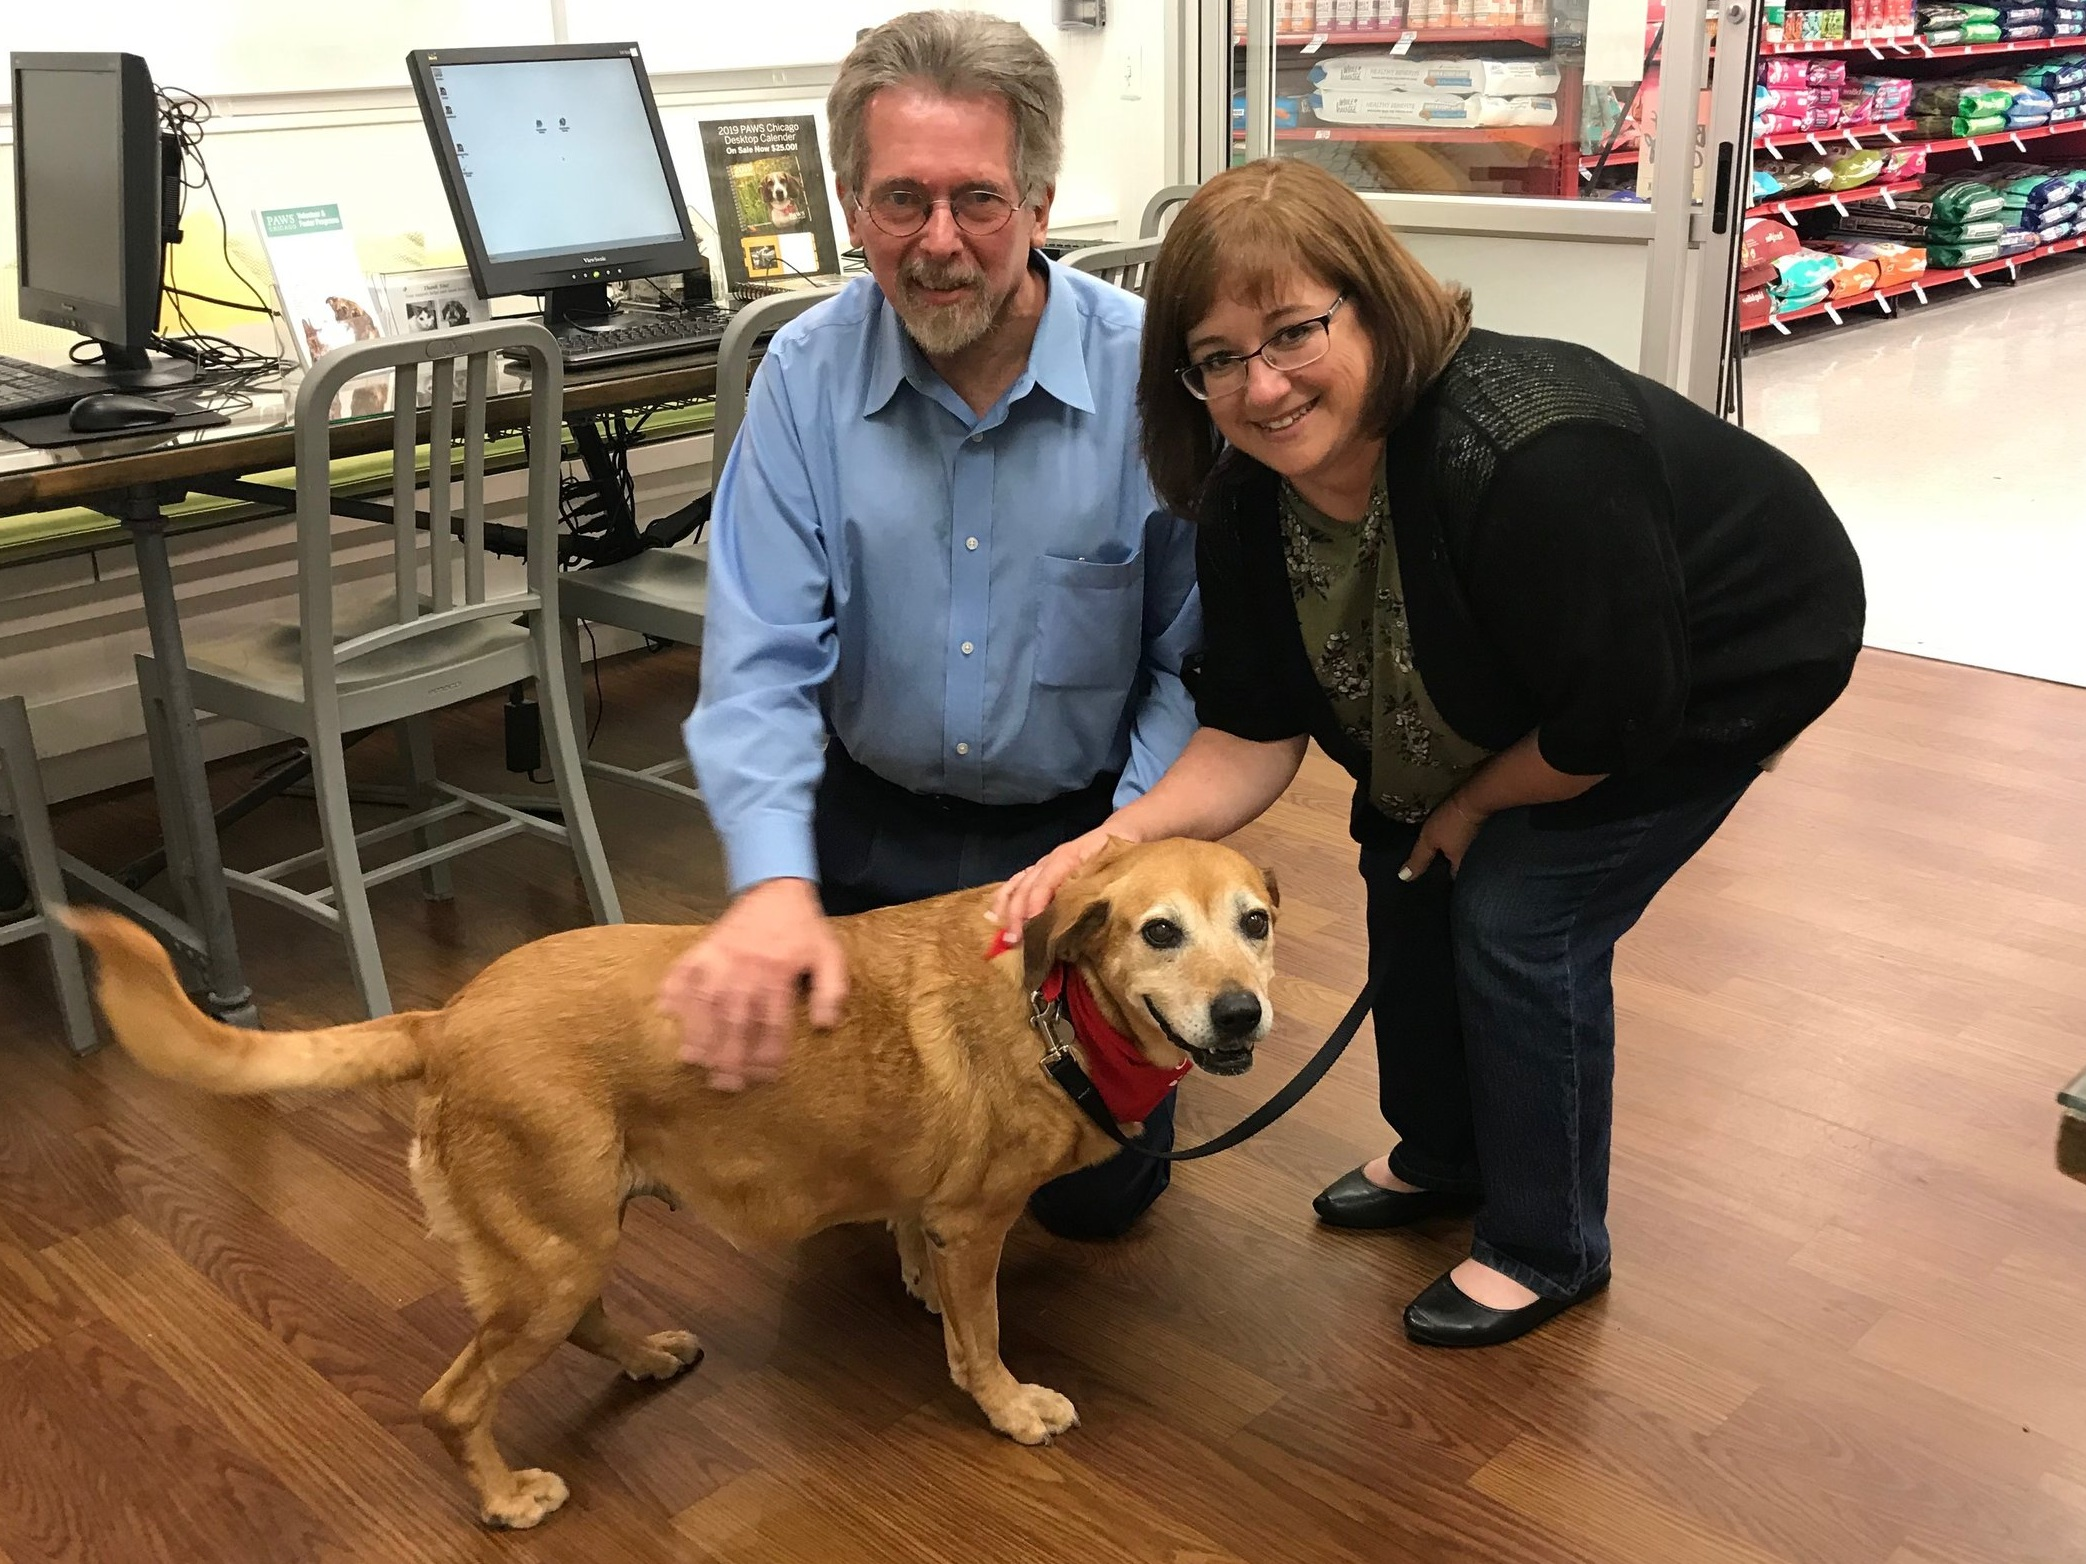 Meet Lolita, a senior pup who was adopted from PAWS Chicago yesterday with the help of the PR Foundation sponsoring her adopting fees for her new owners.